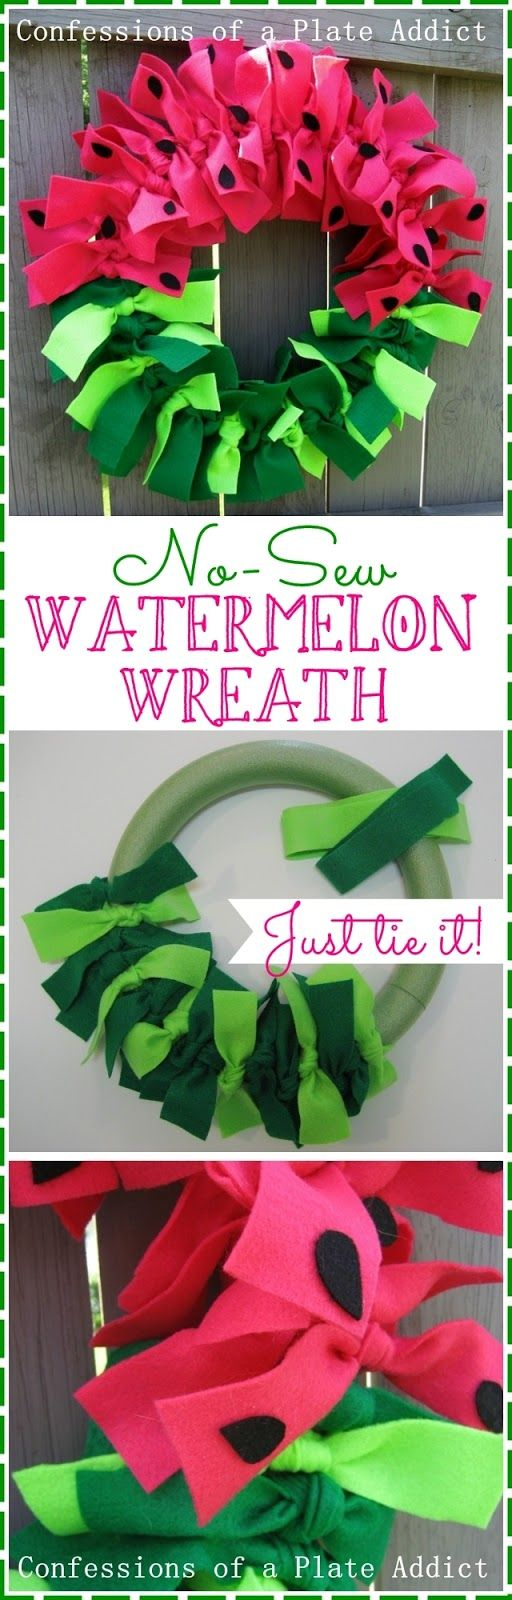 CONFESSIONS OF A PLATE ADDICT: Easy No-Sew Watermelon Wreath...Just Tie It!